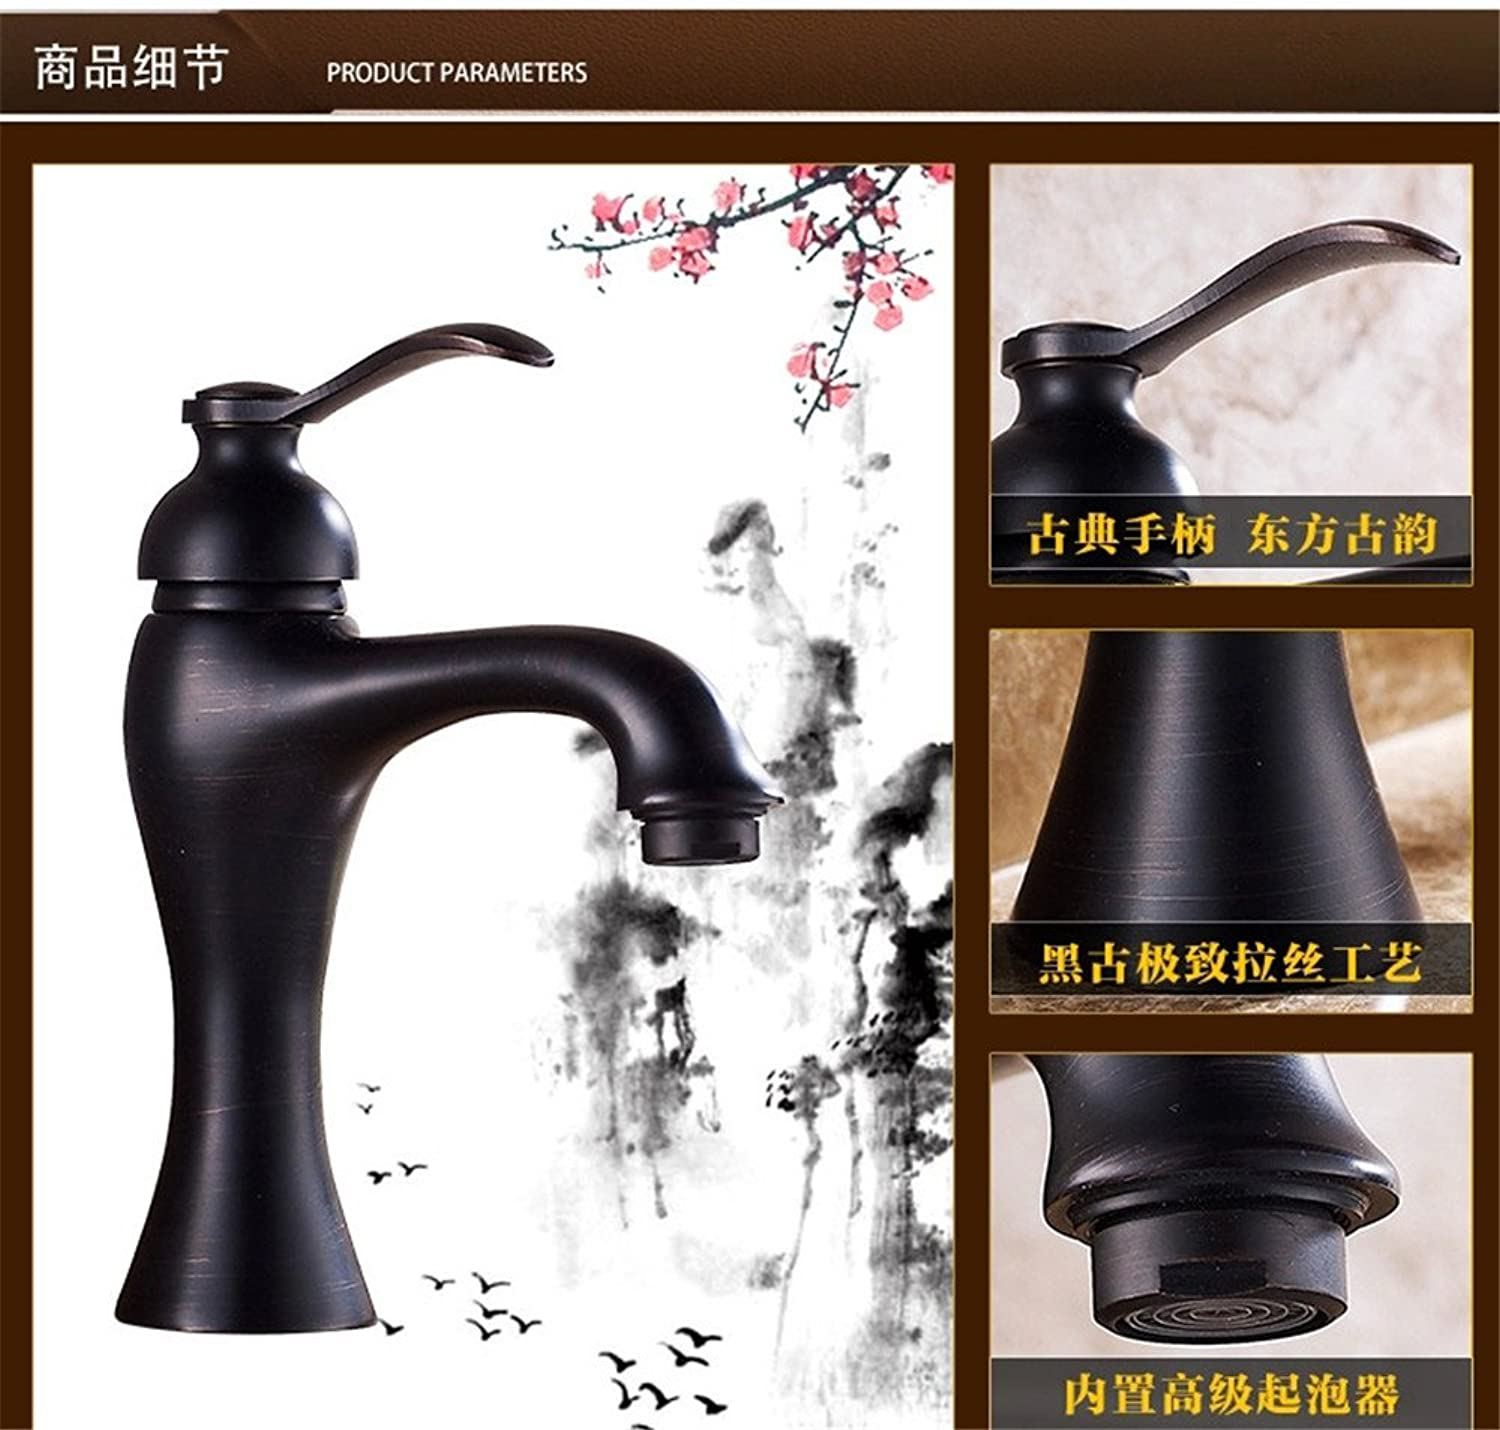 Hlluya Professional Sink Mixer Tap Kitchen Faucet The Copper Black faucet antique faucet basin cold water tap.